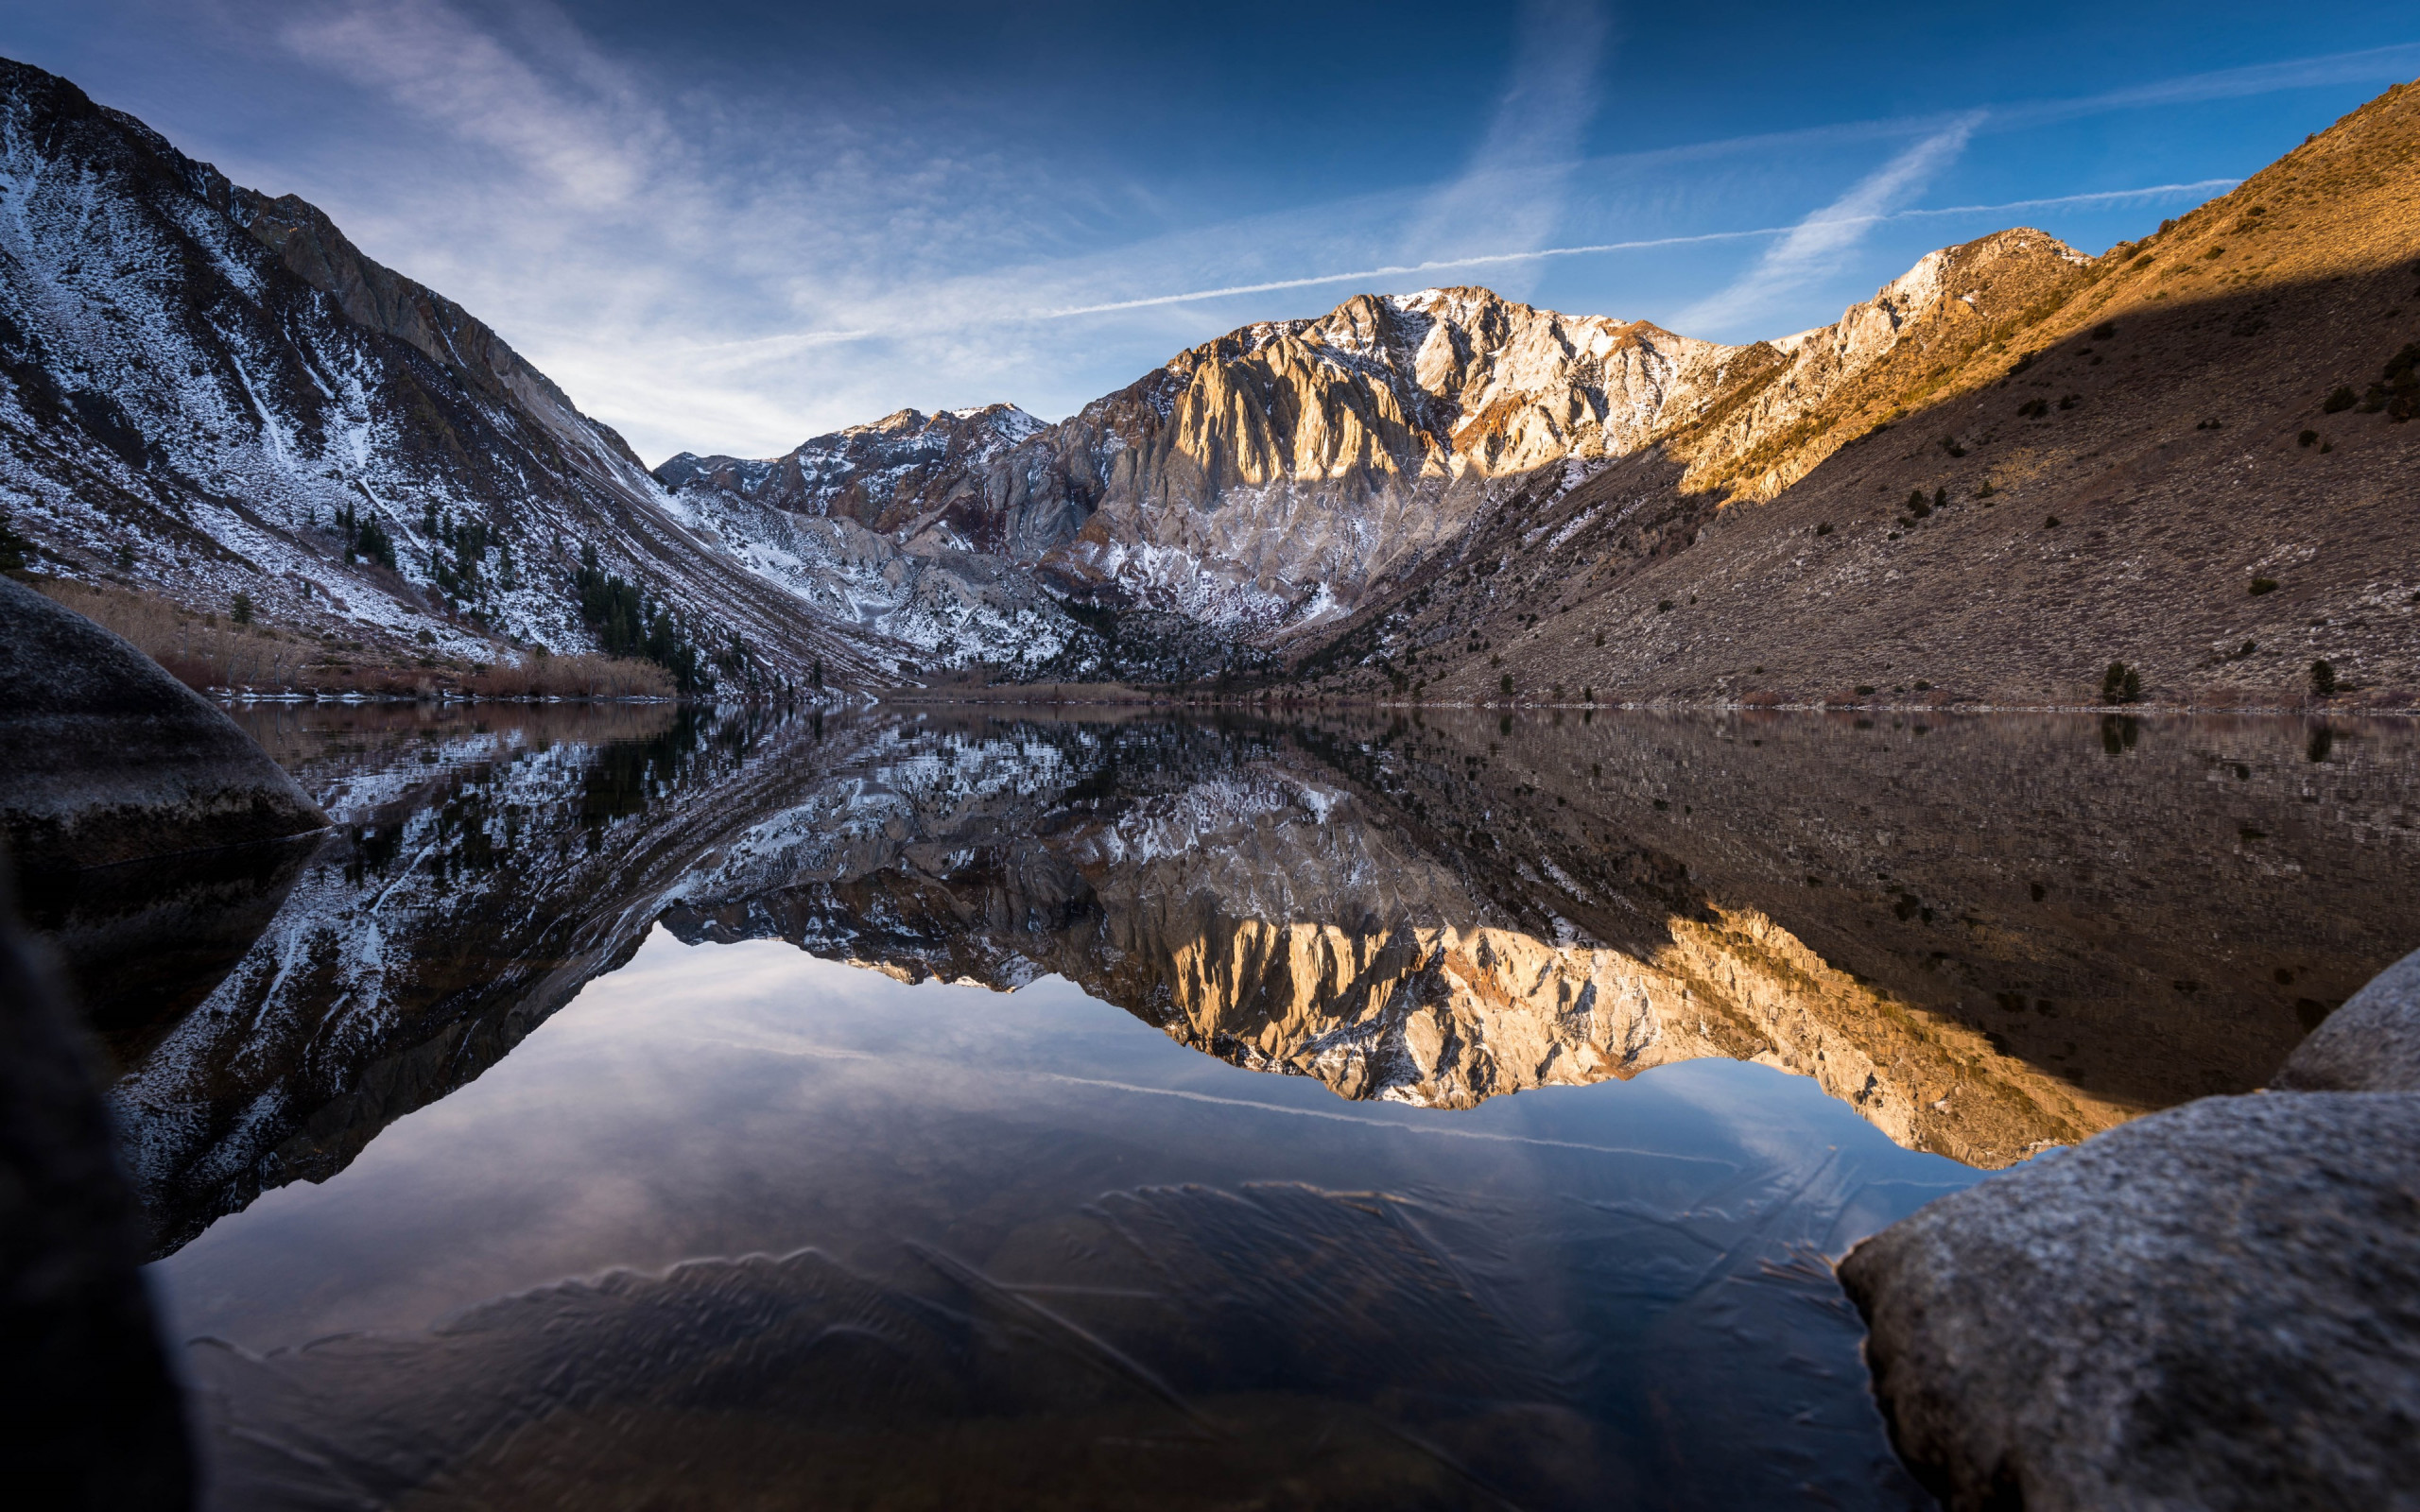 Convict lake began to freeze wallpaper 2560x1600